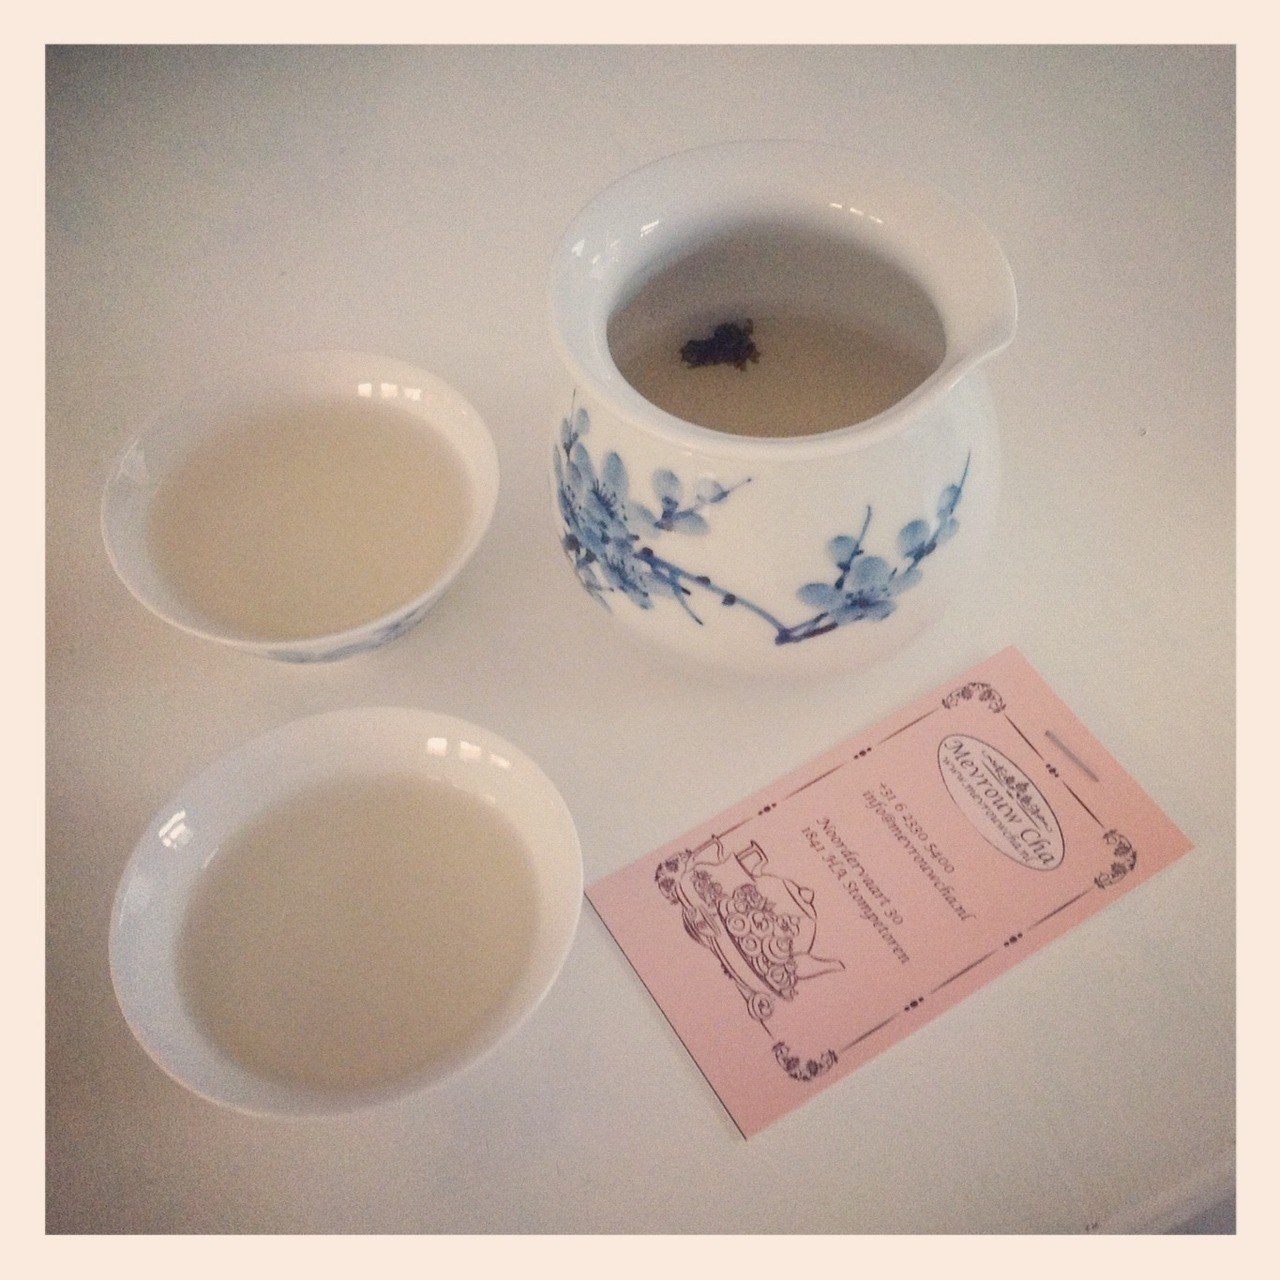 Today I went to a tea tasting in a very nice teahouse (where my photos are in a exposition). Learned a lot, she also gave me a milky oolong to taste at home and I love it! I keep pouring myself a new cup.